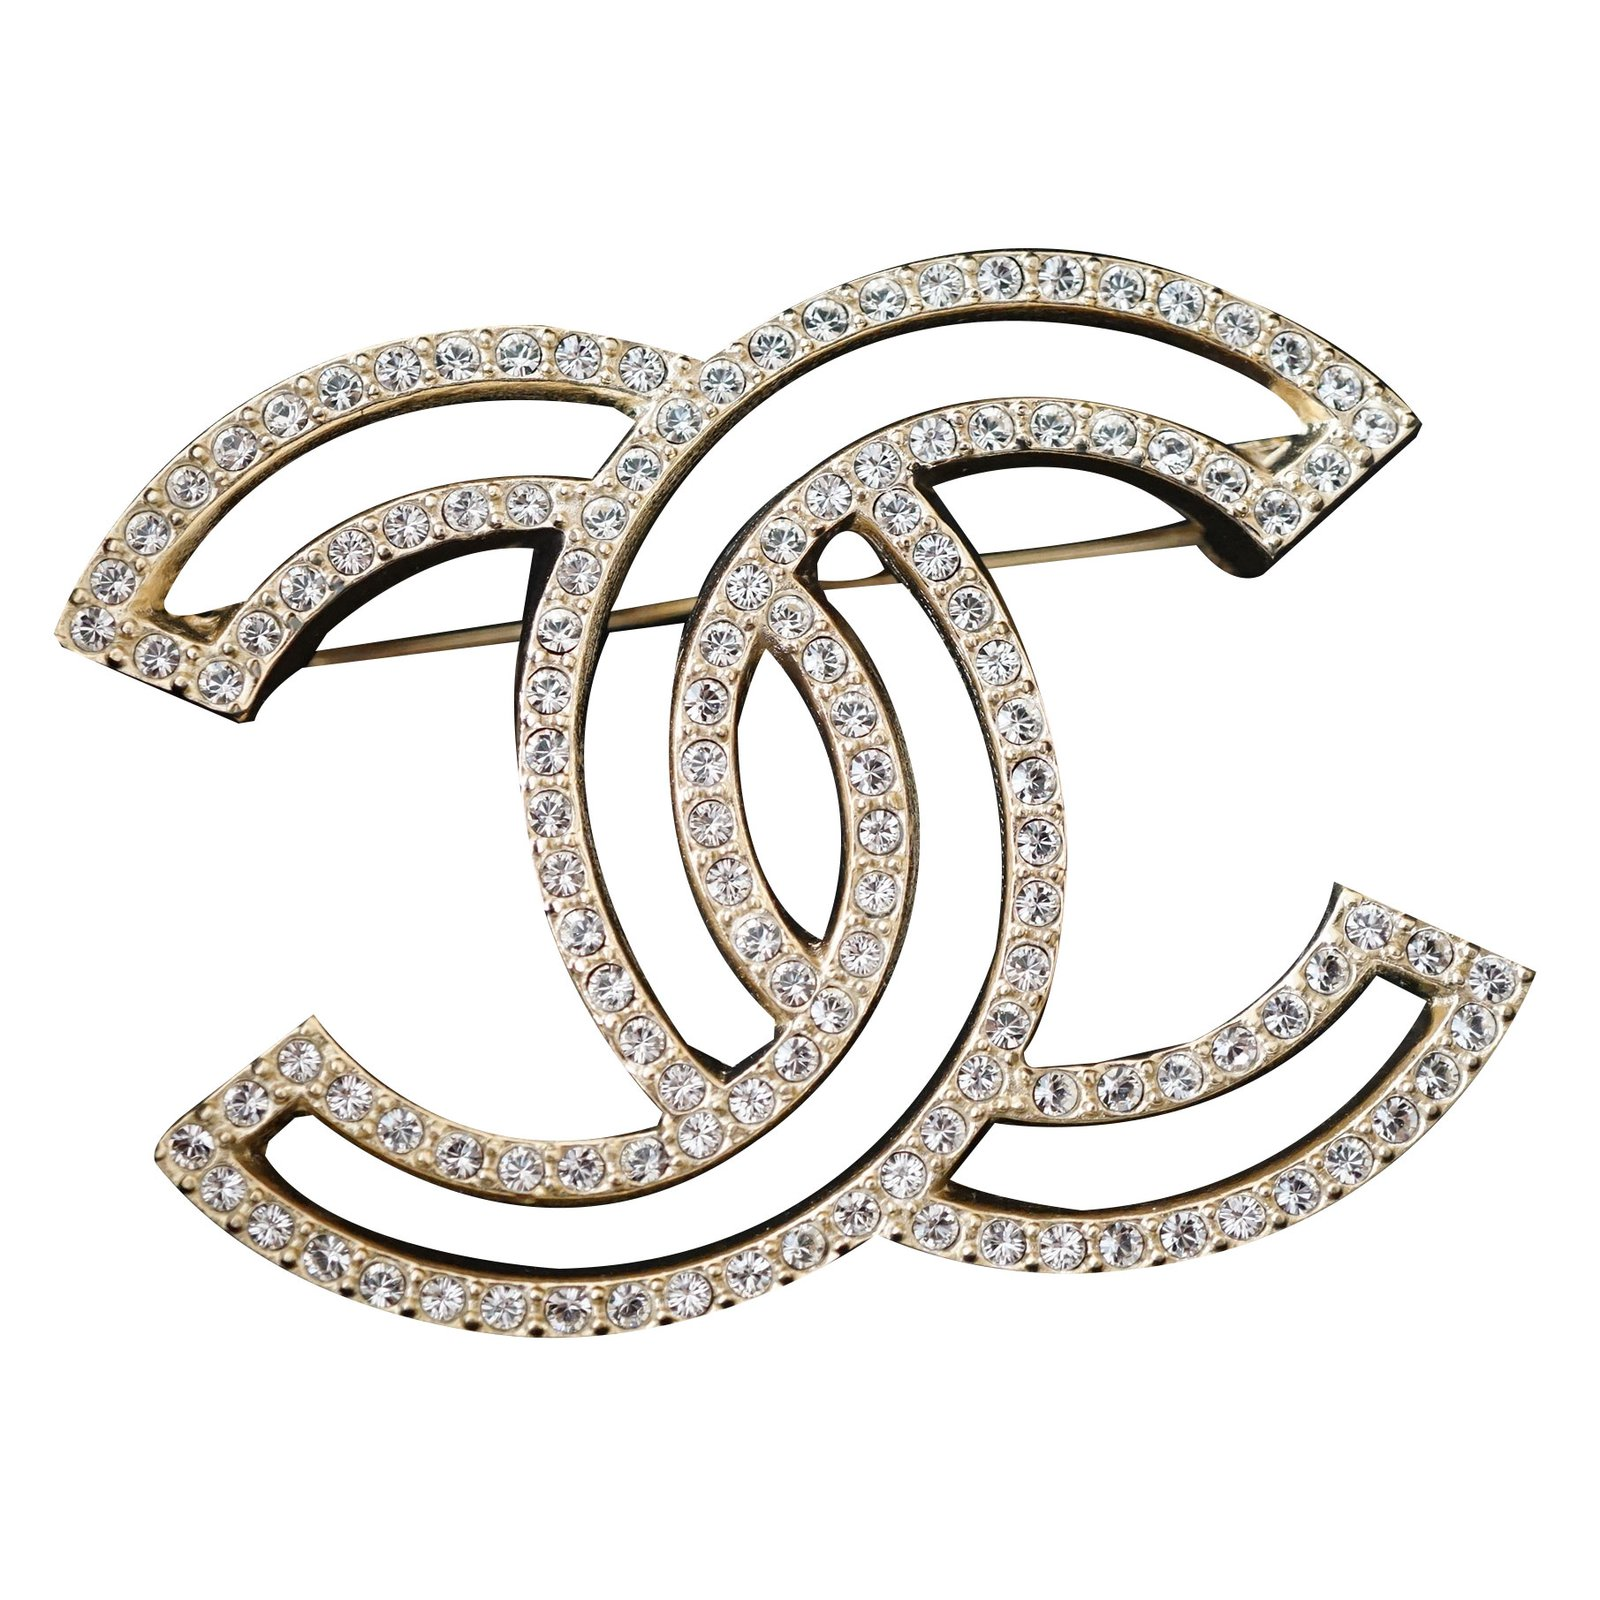 diamond jewelry jethro marles clip product double art deco brooch